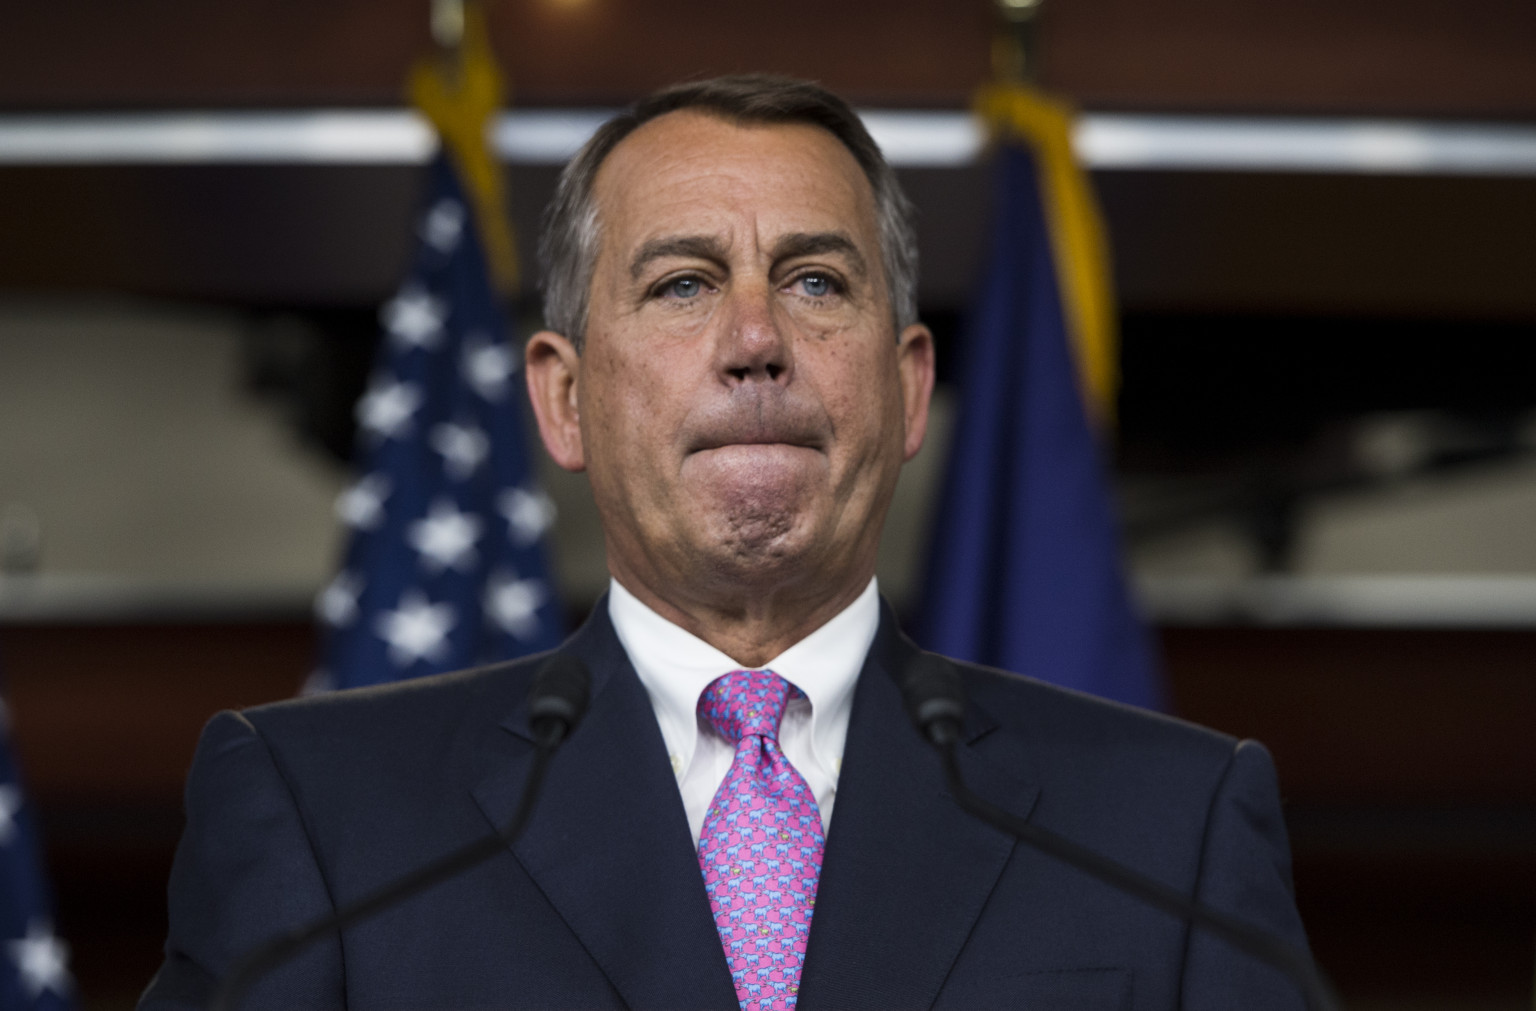 Boehner Admits Behind Closed Doors: Republicans Will Never Repeal Obamacare (VIDEO)